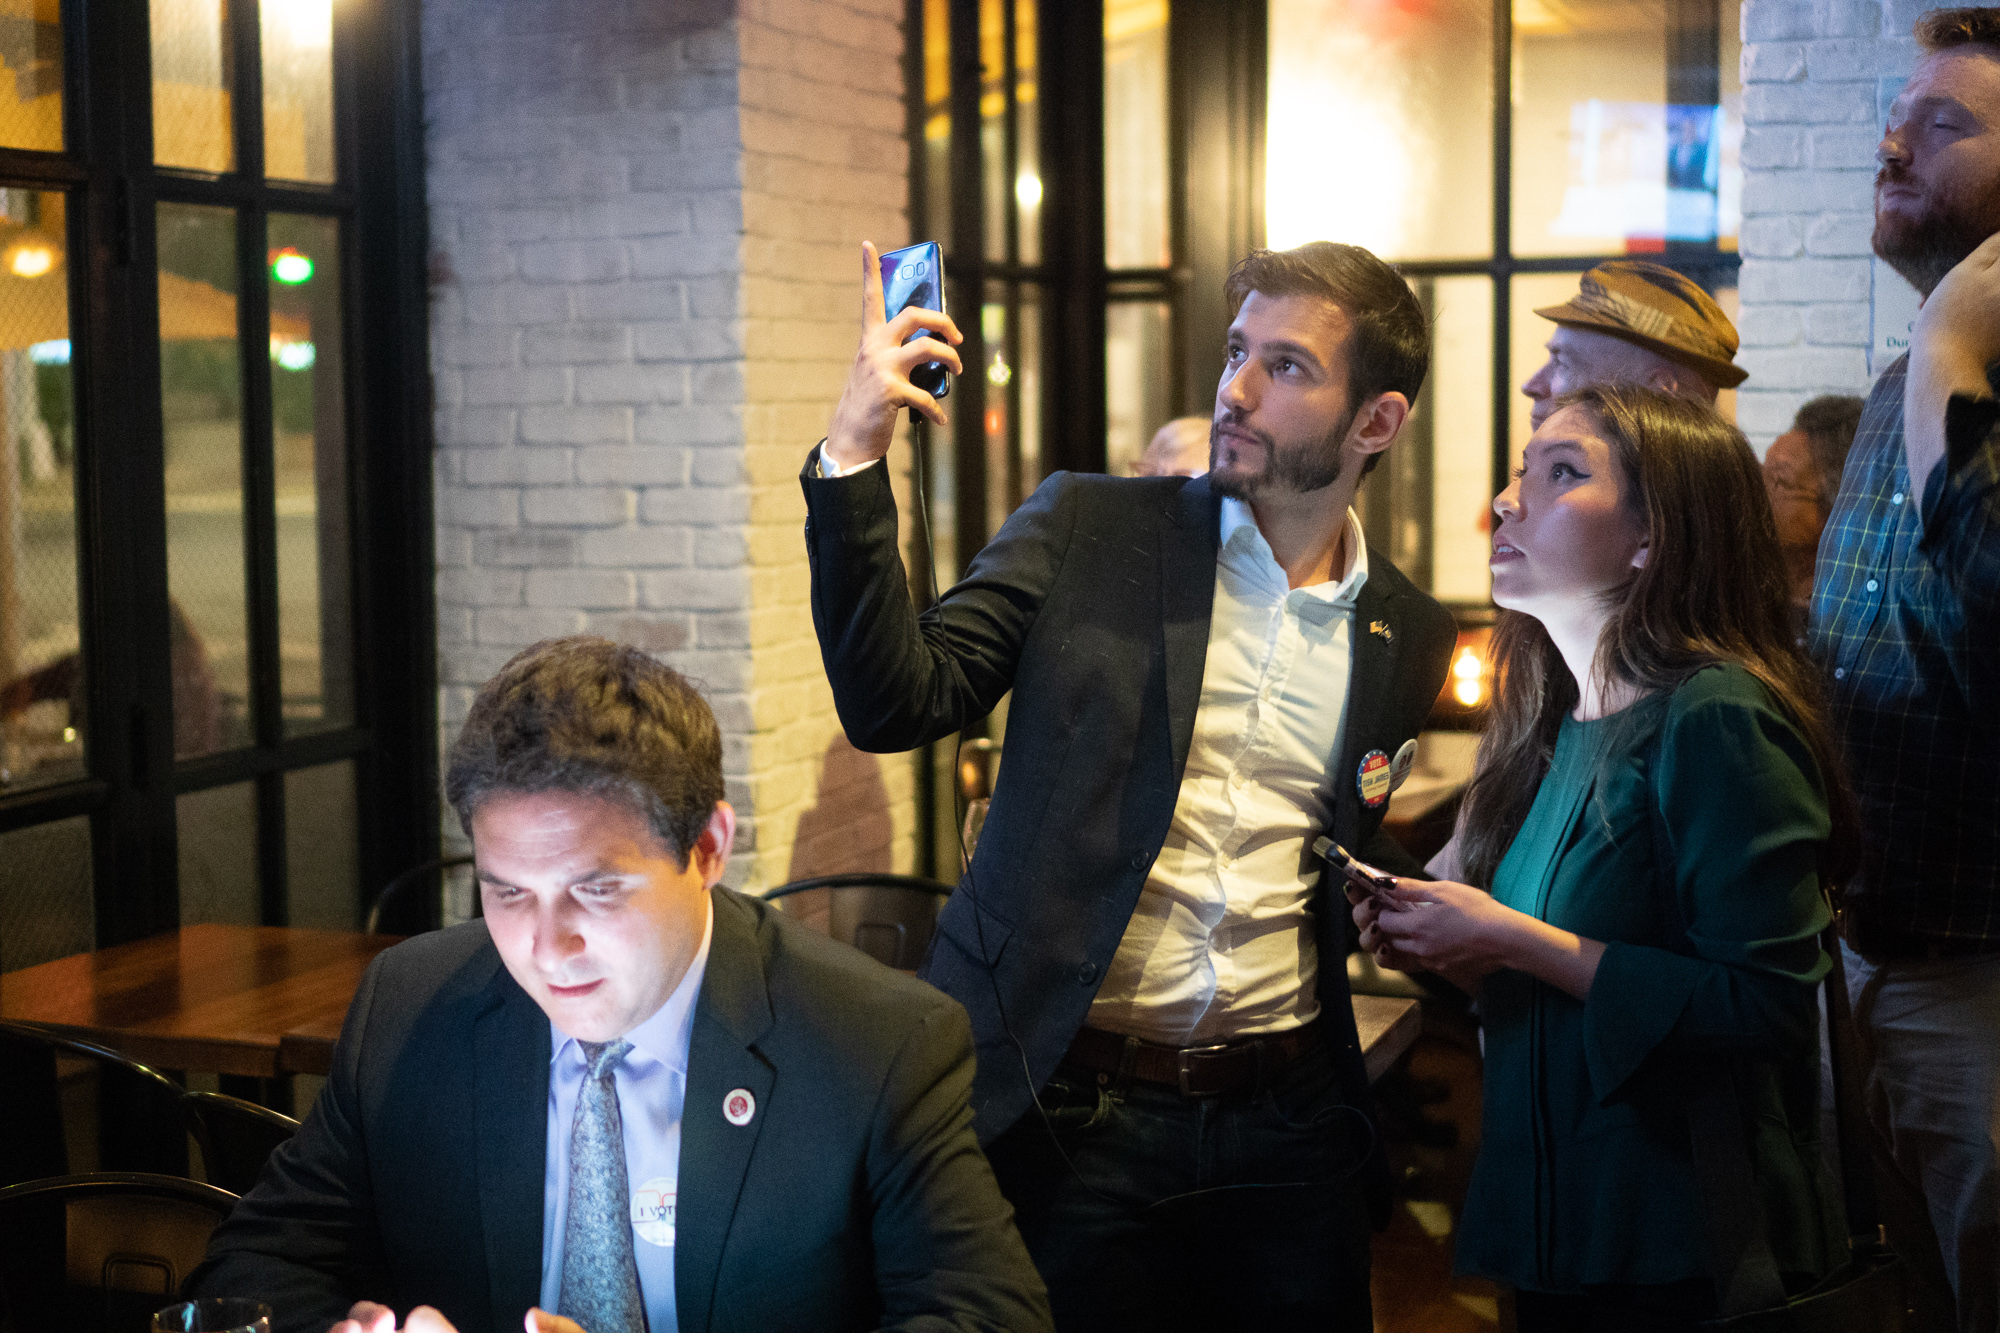 Democratic party memeber kept a close call as the primary results started to come in.